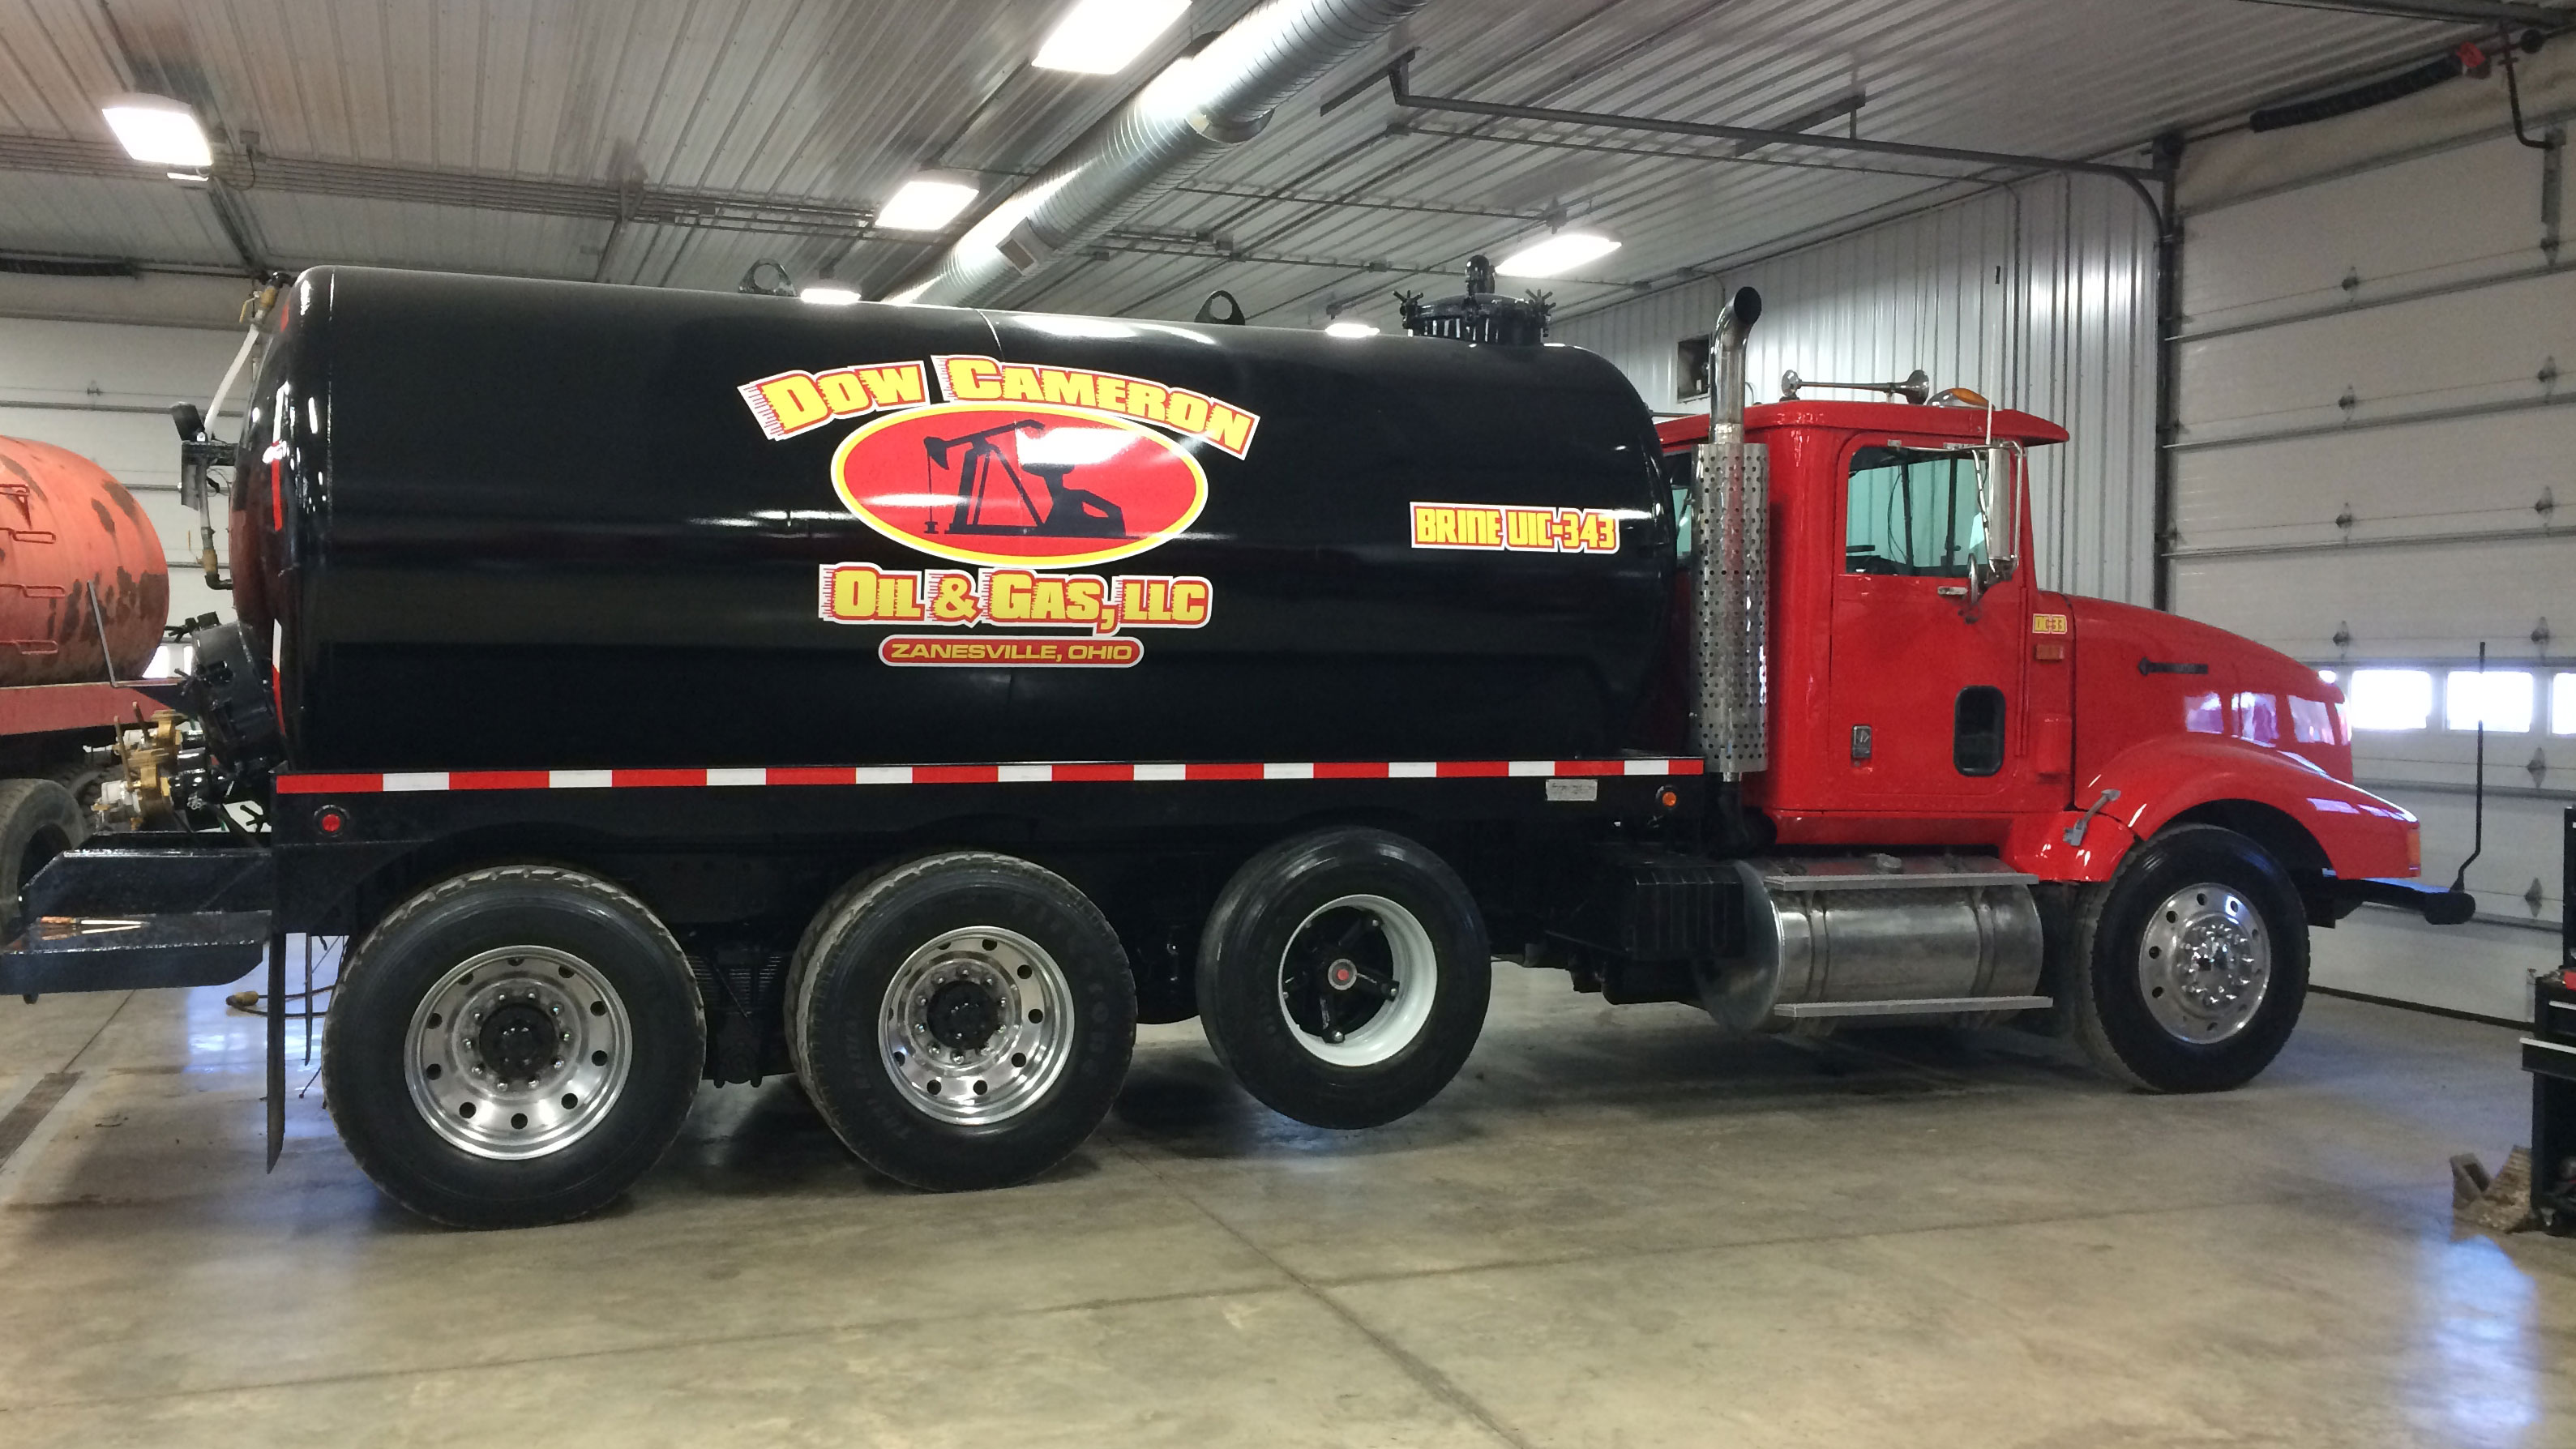 Dow Cameron Oil Gas Trucking Water Hauling Rigging Fracking Services Ohio Storage Water Hauling